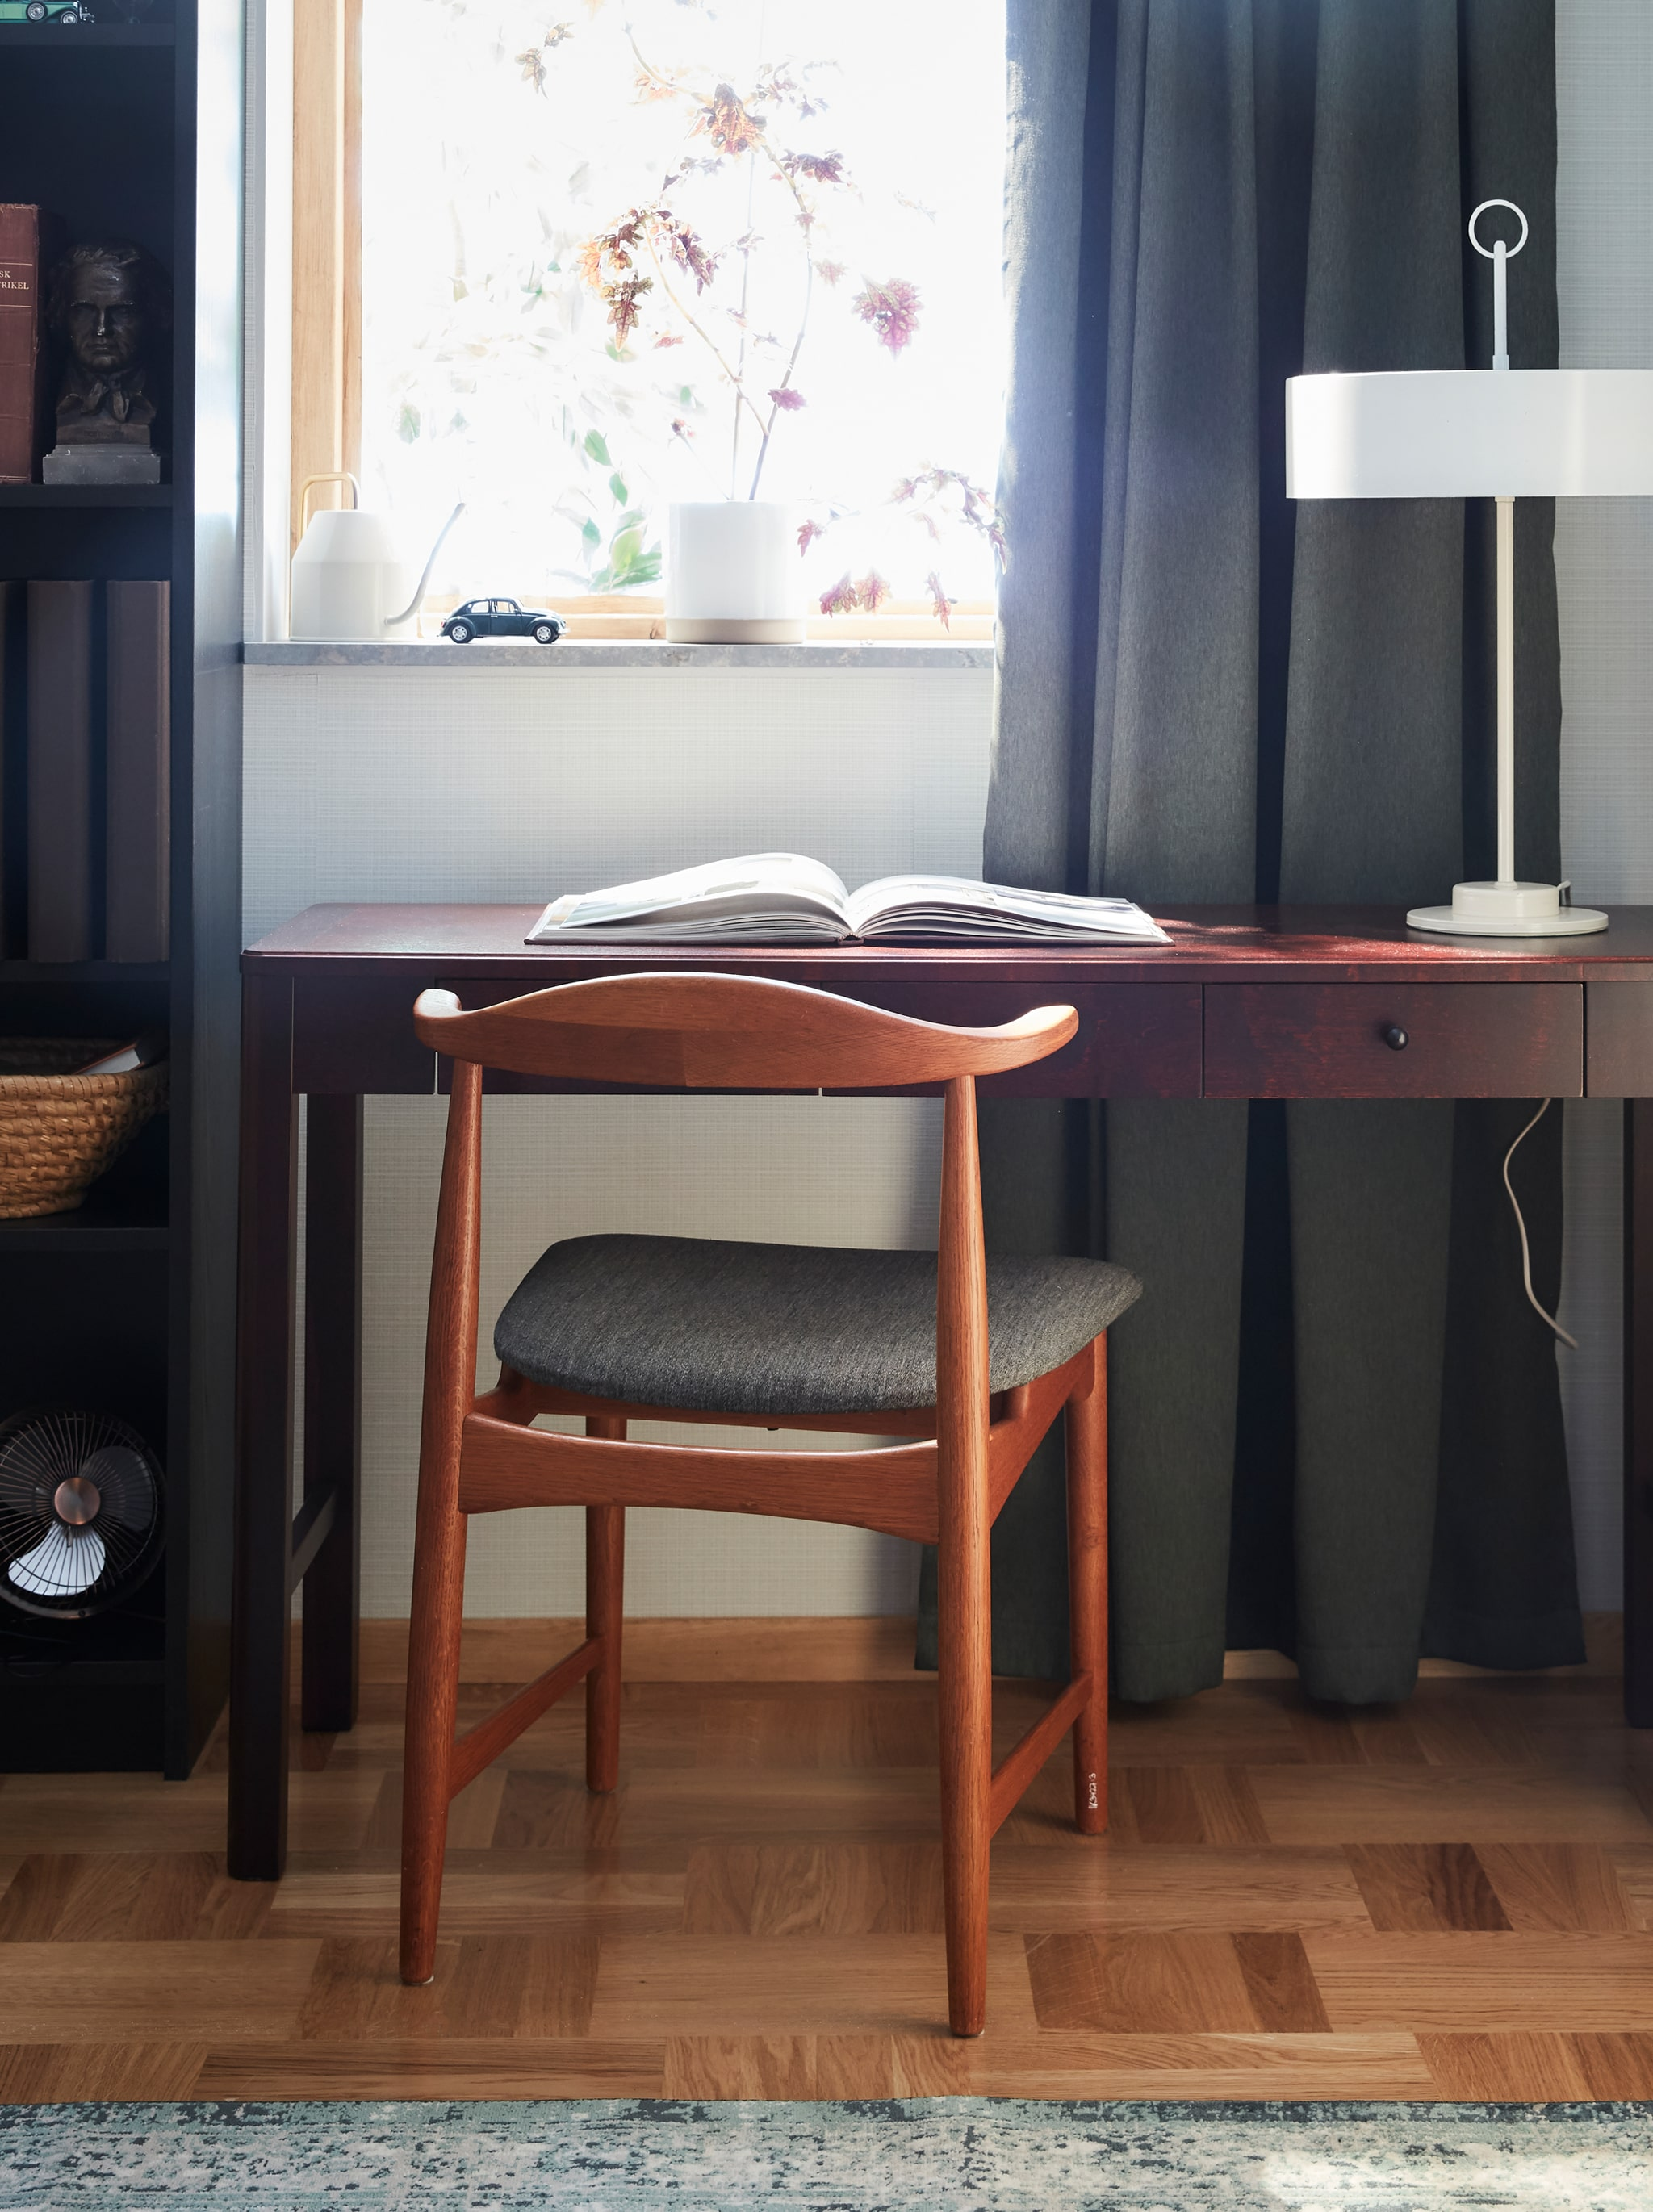 The chair DANSKE in oak with a textile seat designed for IKEA in the 60's, standing in front of a desk in dark wood.